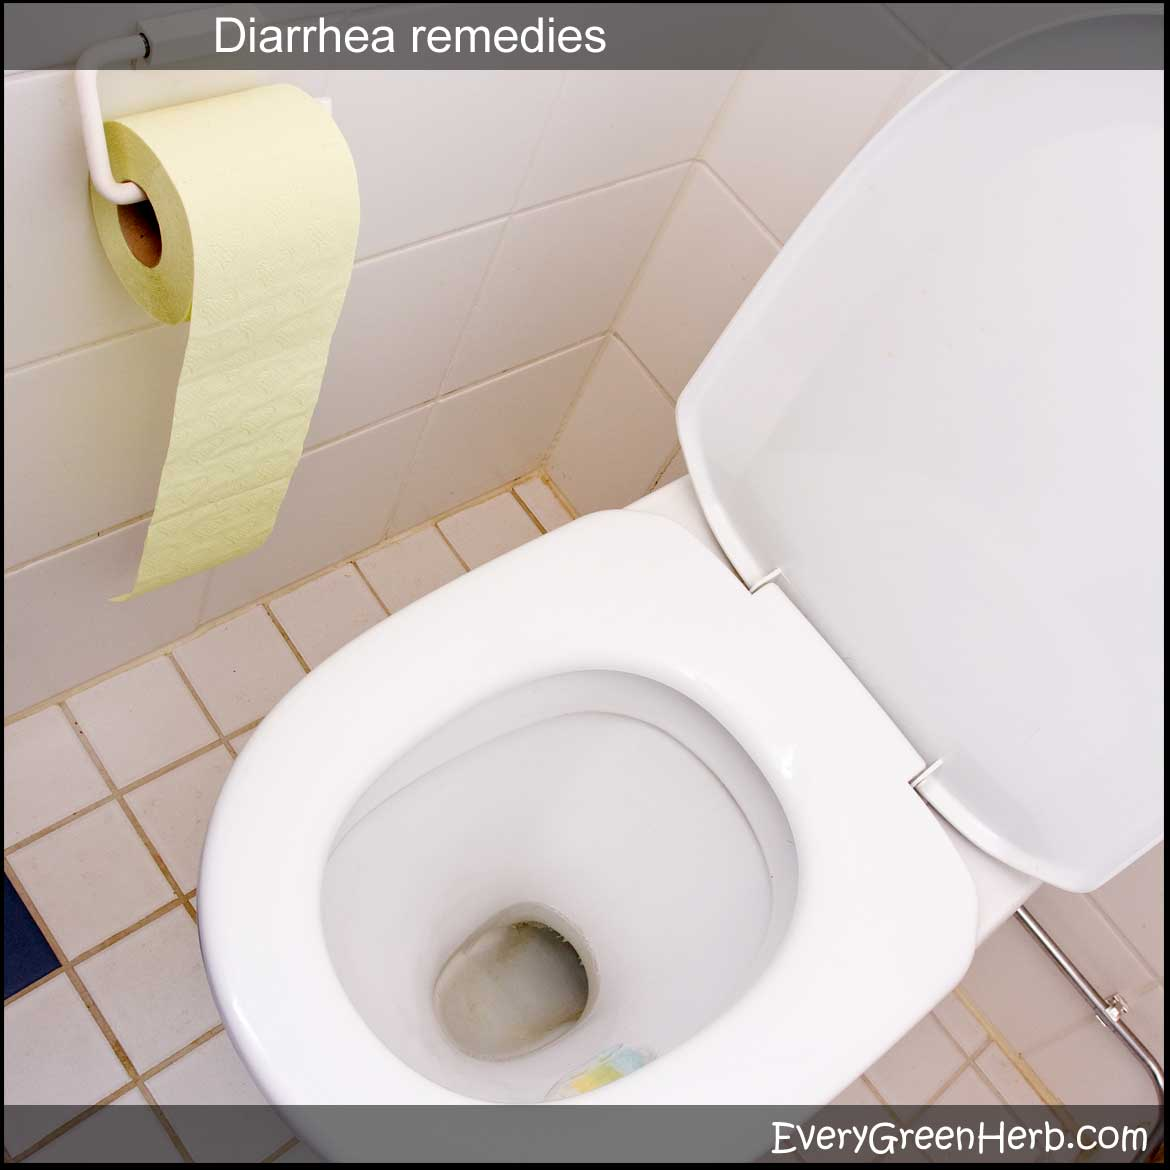 Home remedies for treating diarrhea